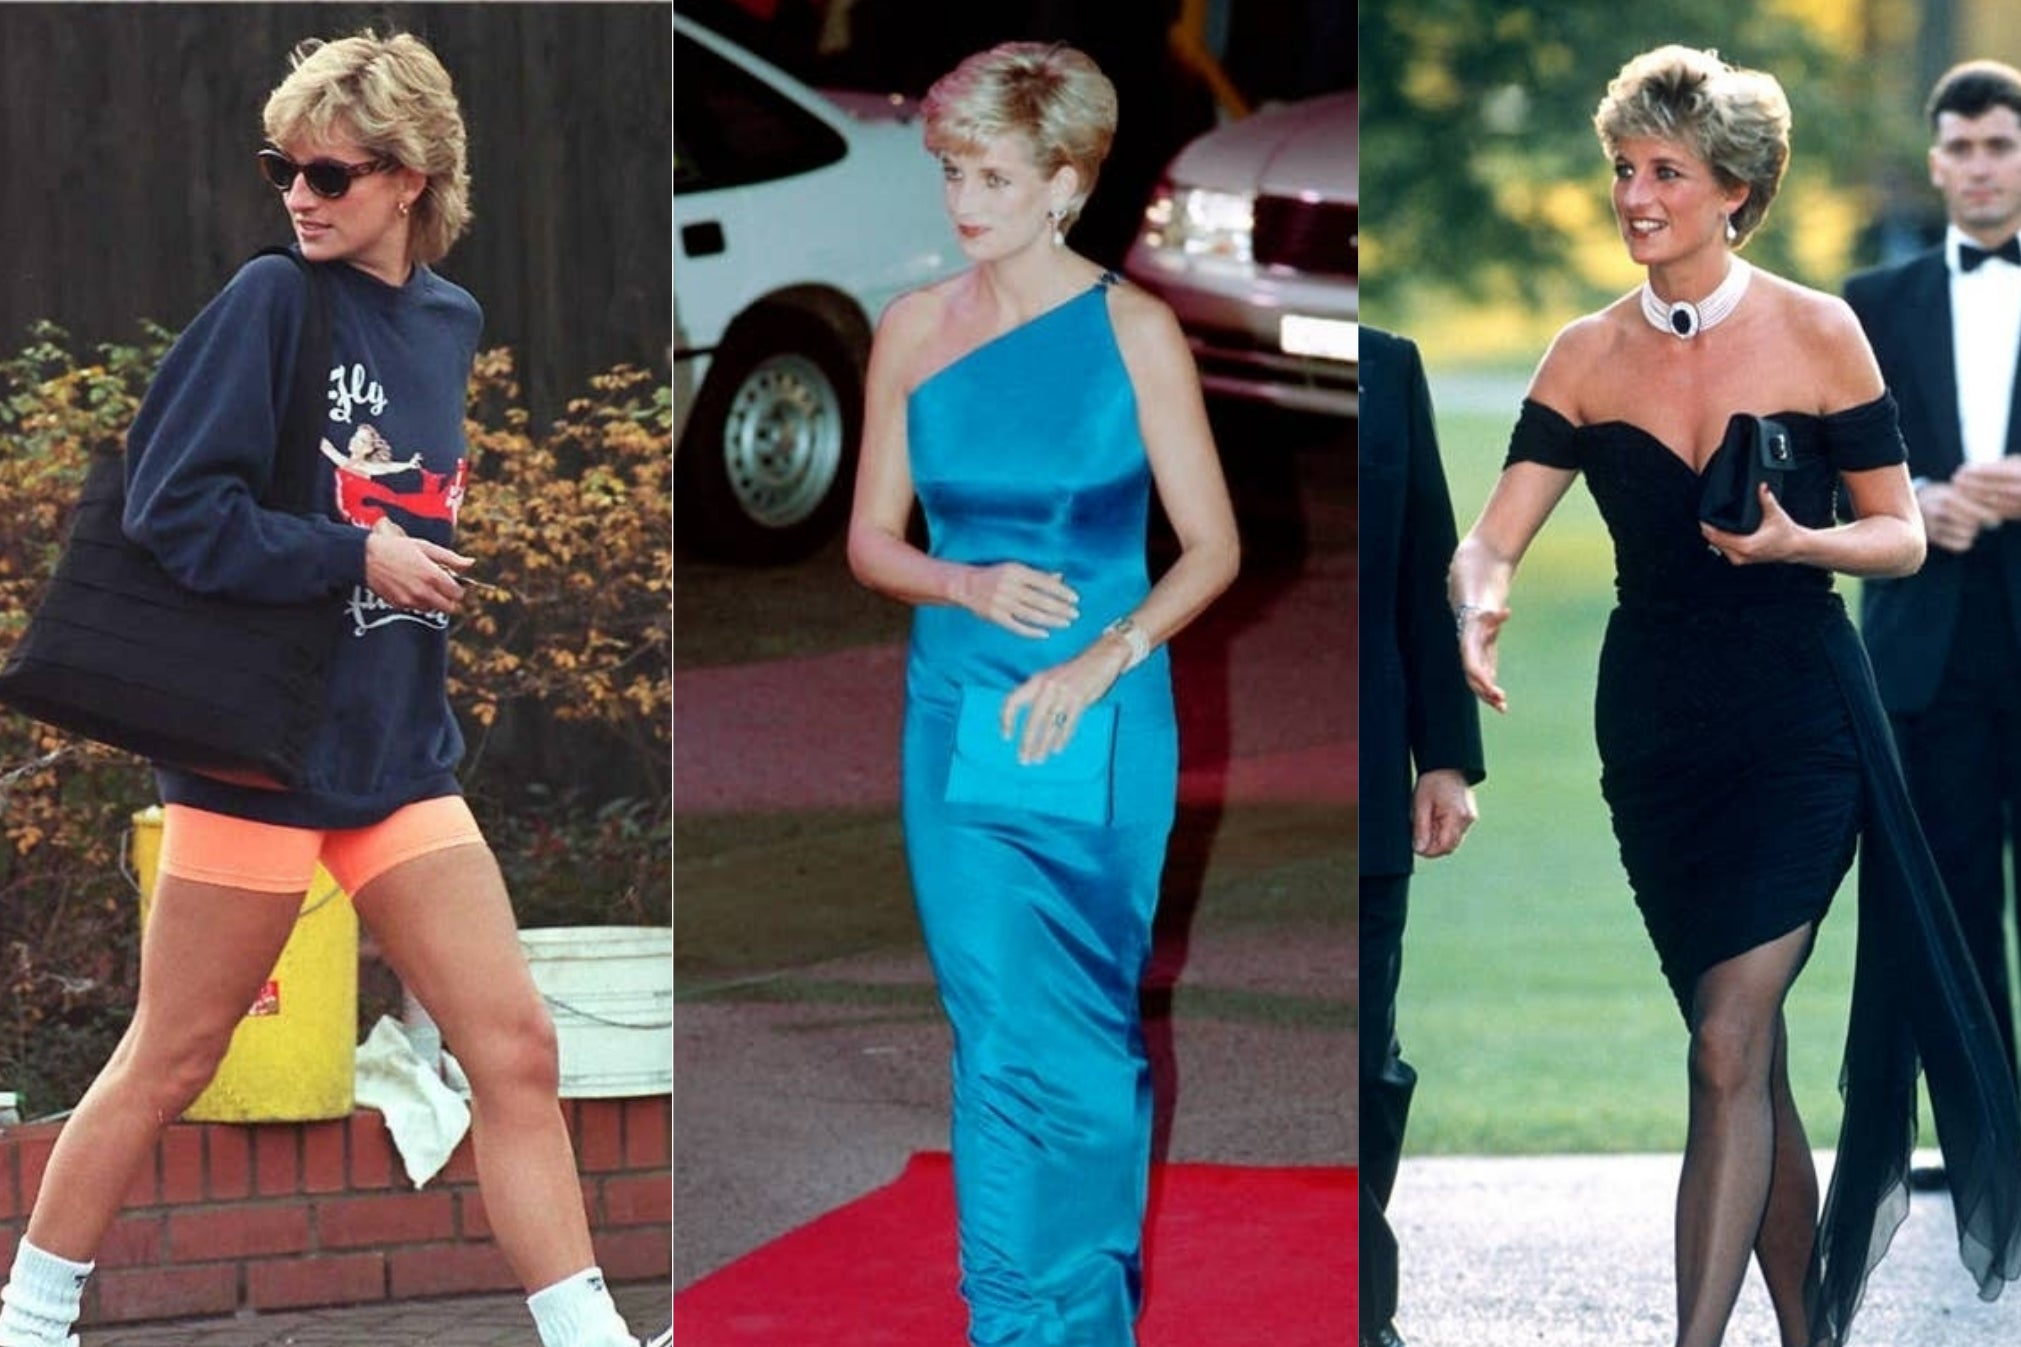 princess diana s most iconic fashion moments from cycling shorts to the revenge dress the independent the independent princess diana s most iconic fashion